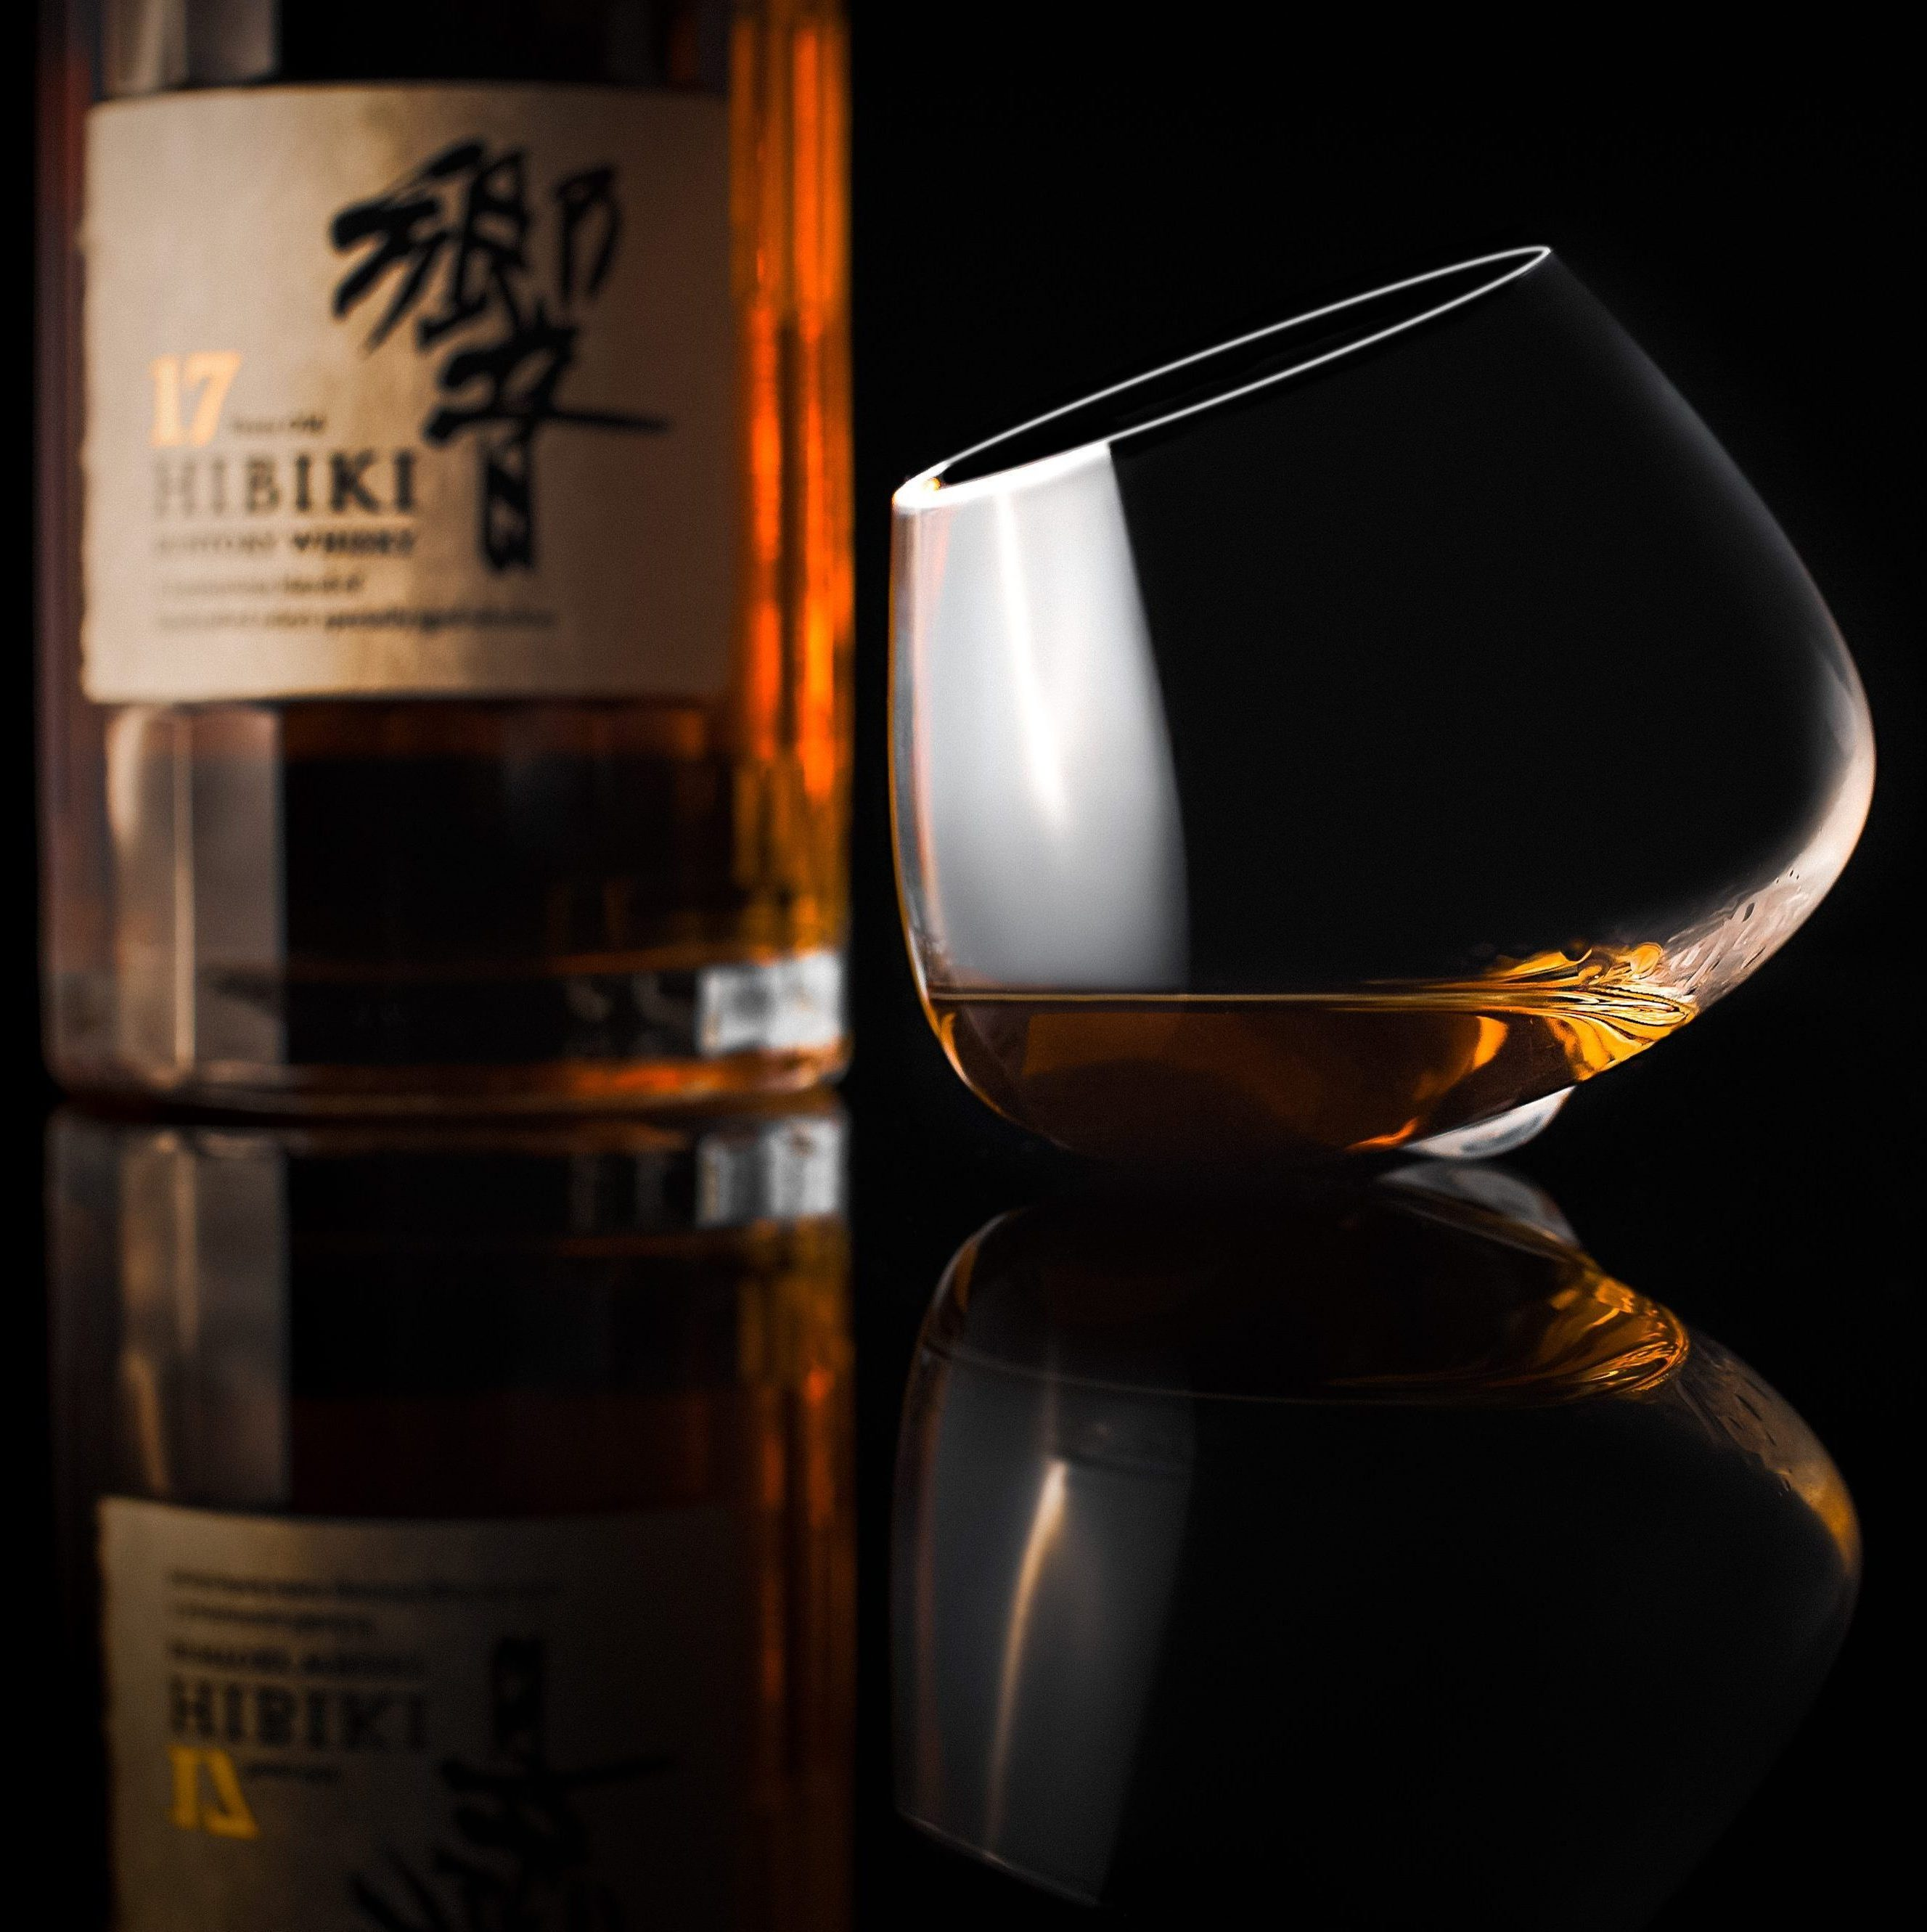 Whisky - Hibiki 17 and glass